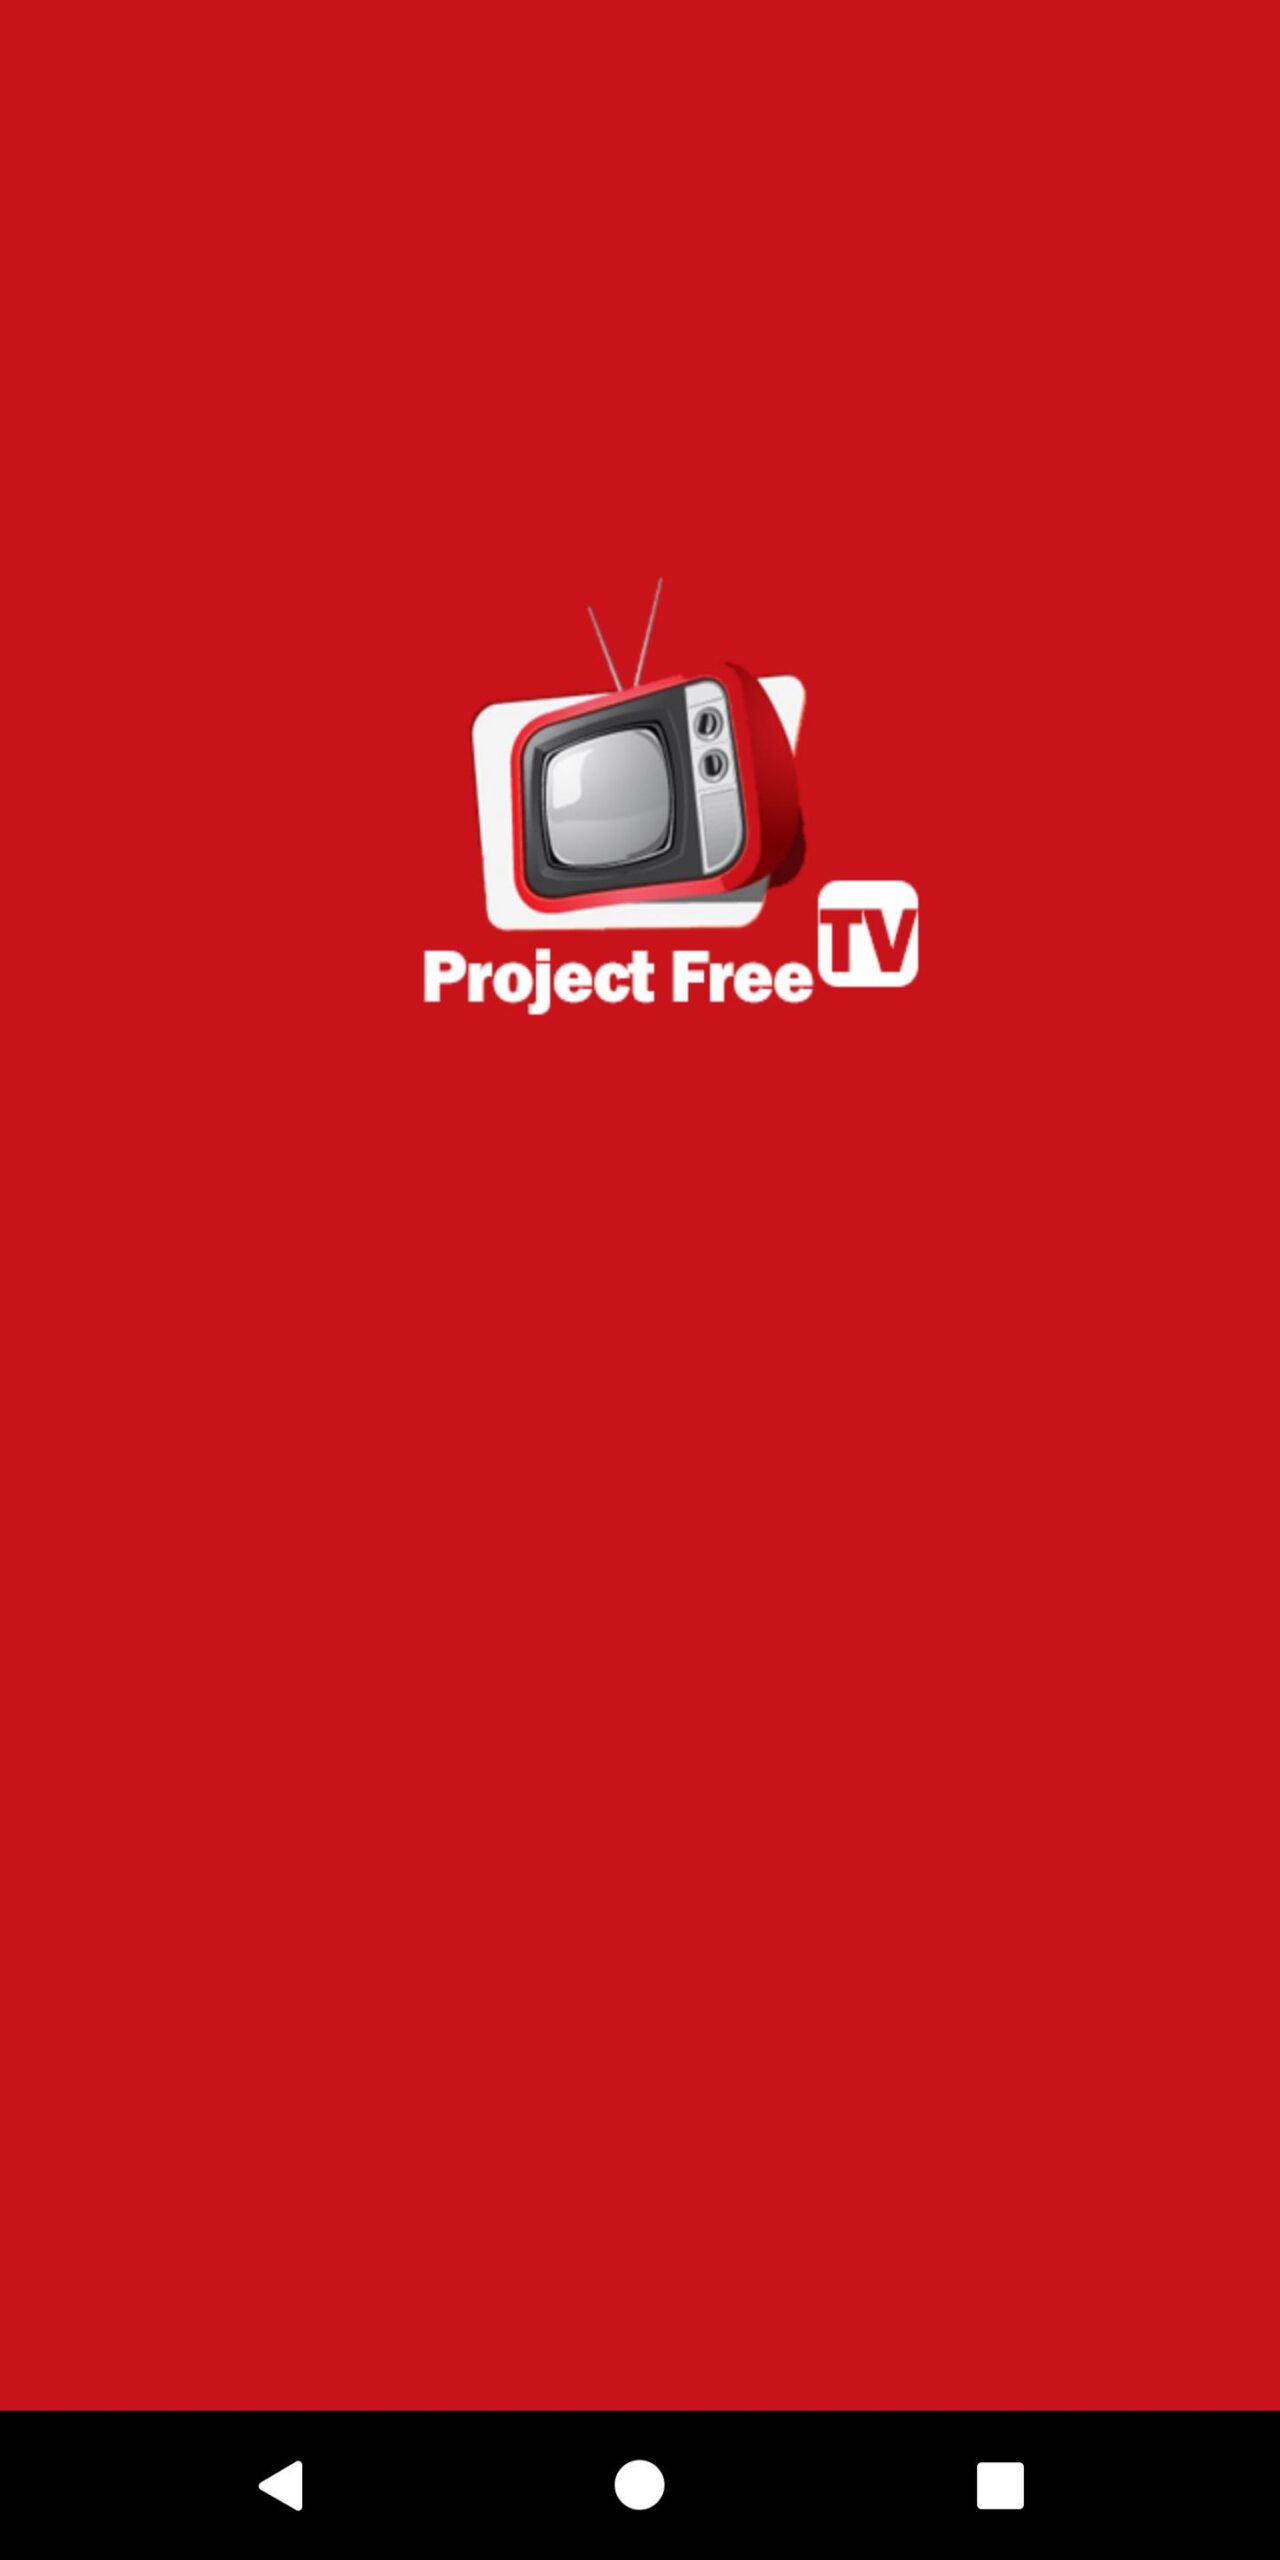 Project Free Tv For Android - Apk Download